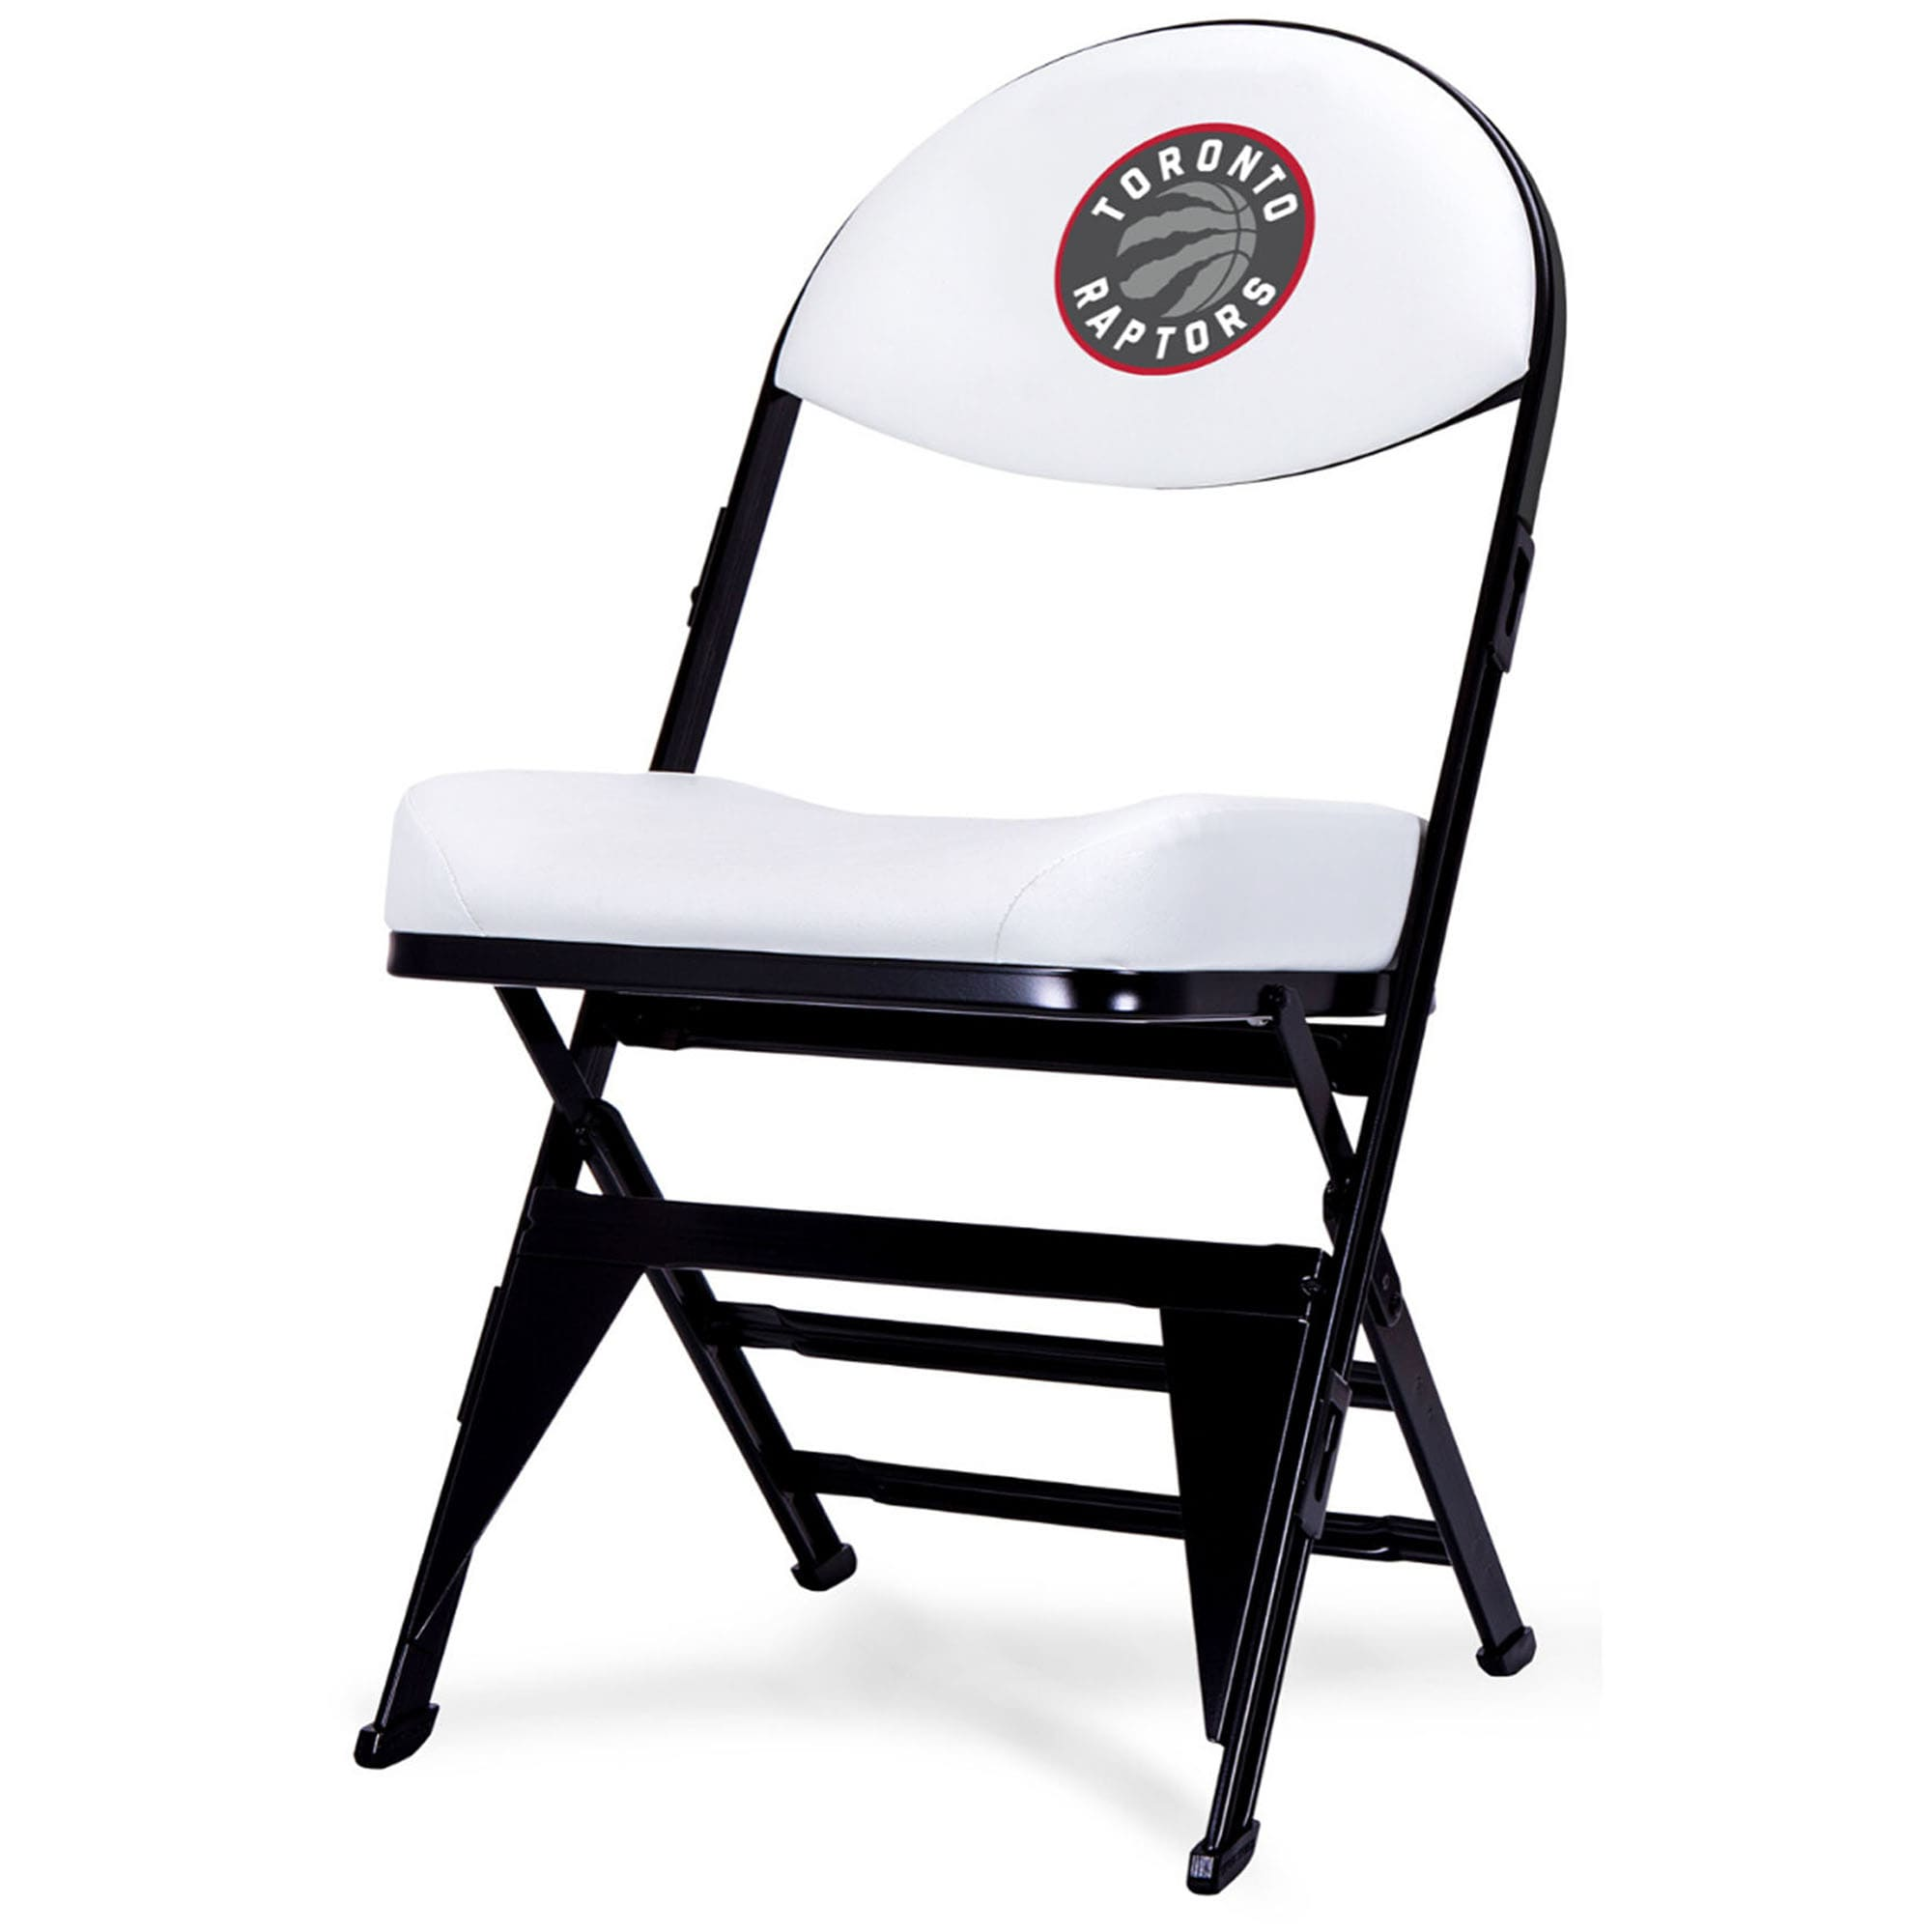 Toronto Raptors Home Team Chair - White